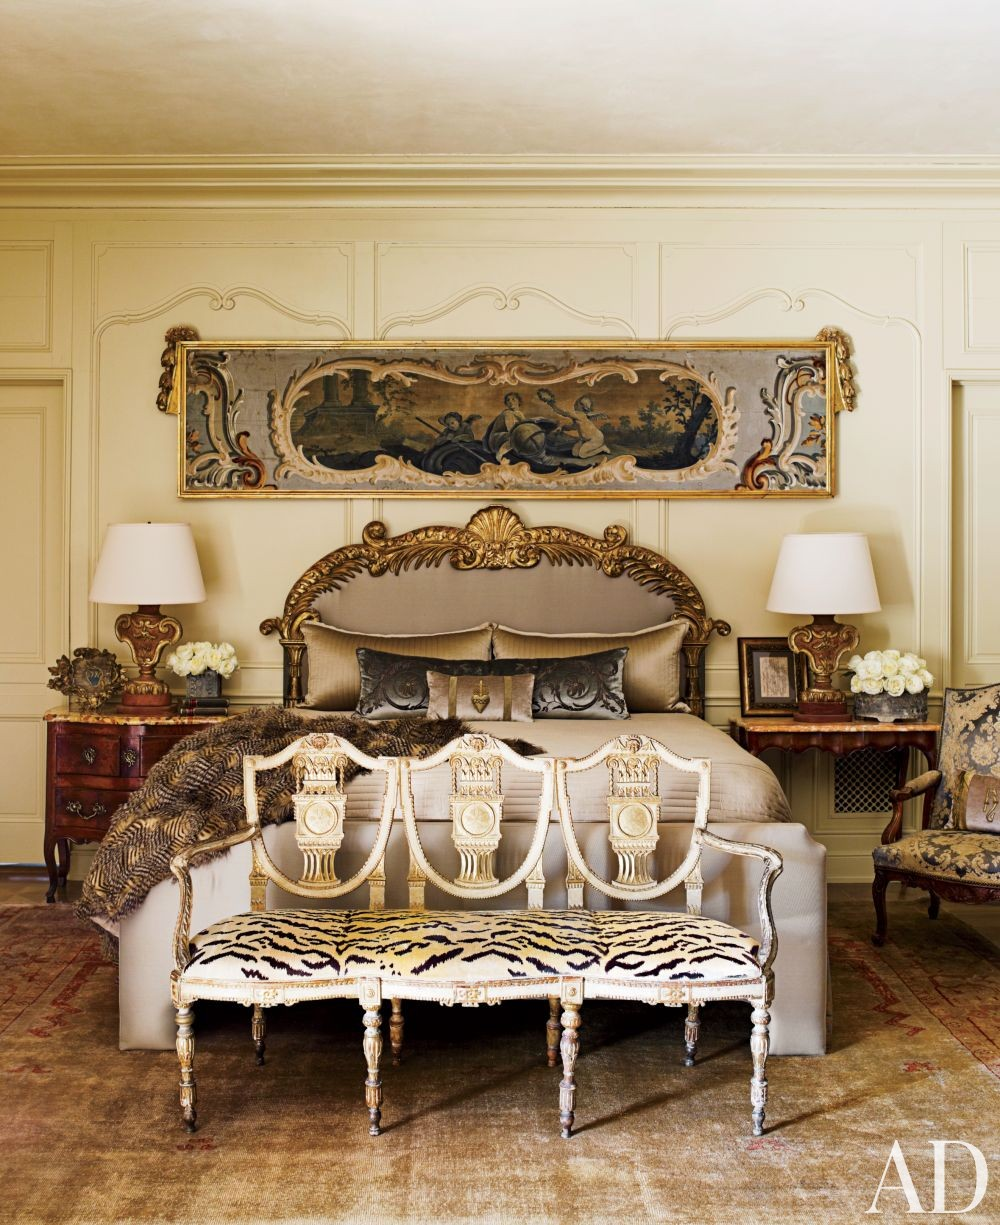 venetial style bed leopard velvet end bench gold gilded molding on walls decor better decorating bible blog